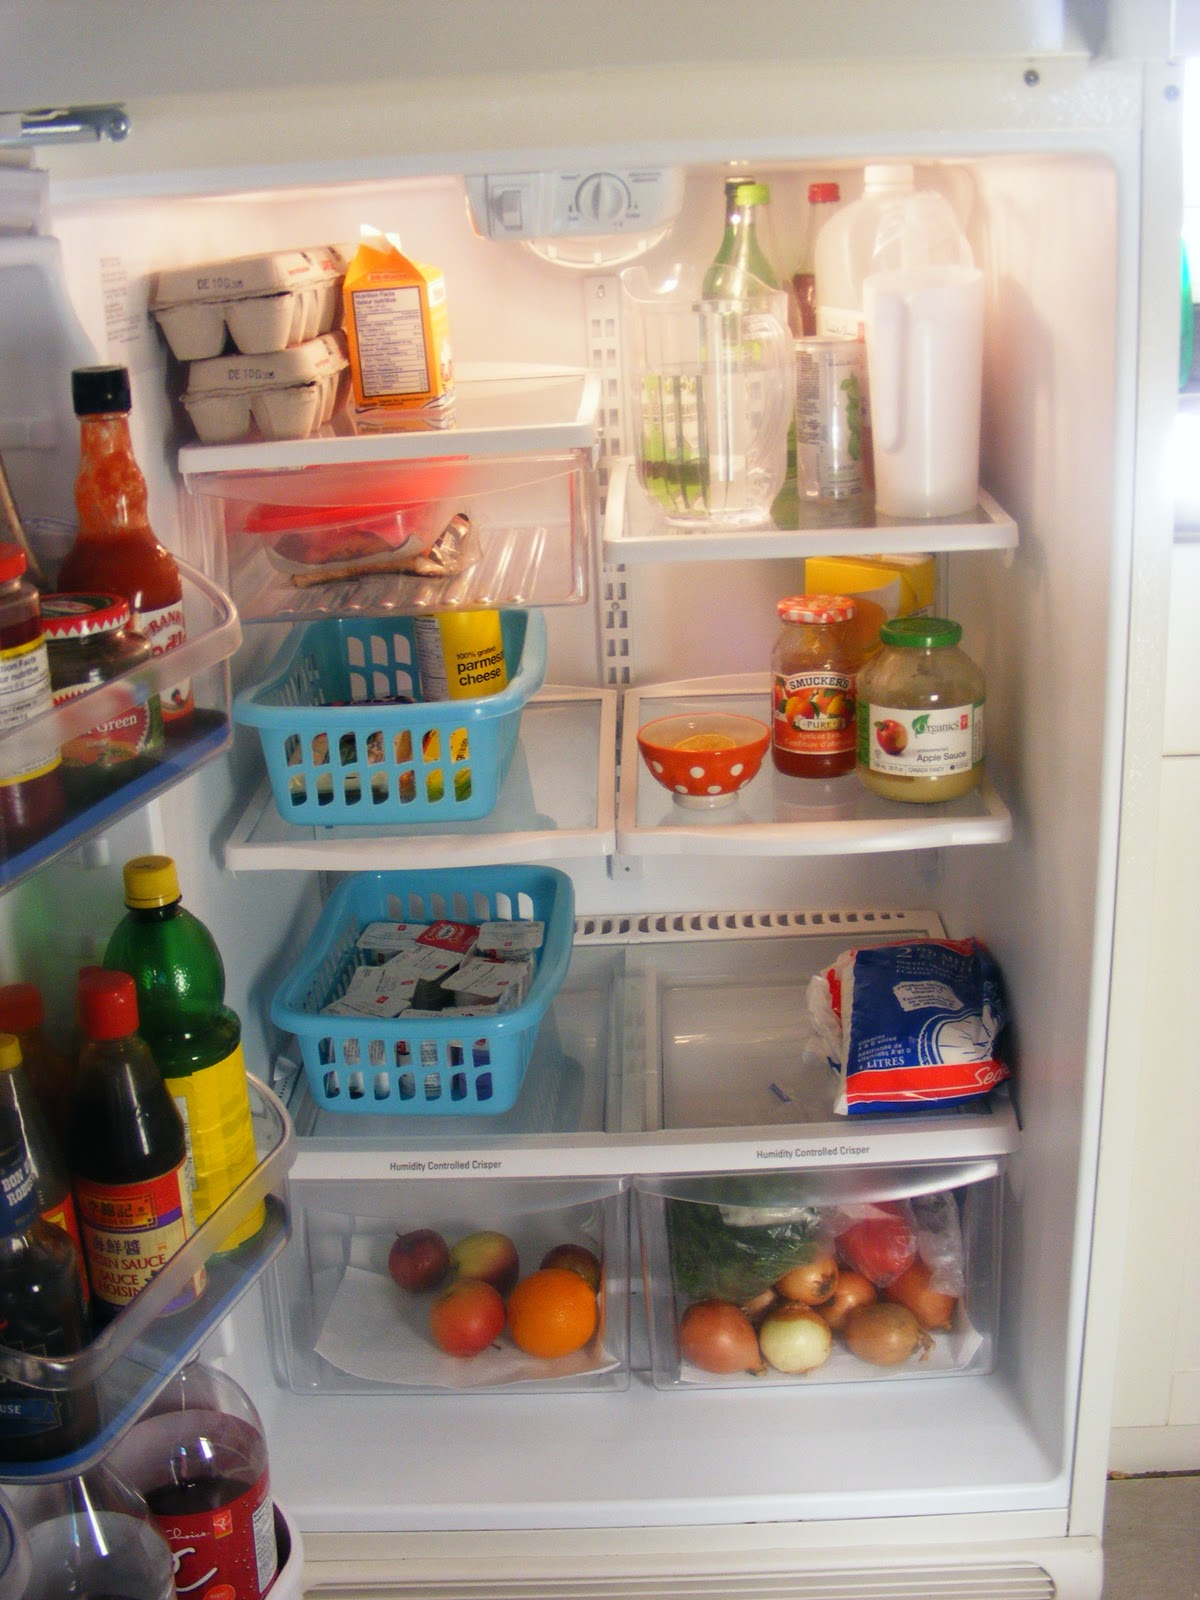 Tips for a Clean and Tidy Fridge | The Complete Guide to Imperfect Home Making Tips on christmas tips, boxing tips, housekeeping tips, quilting tips, golf tips, internet tips, science tips, work tips, grooming tips, beauty tips, traveling tips, accounting tips, diy tips, literacy tips, education tips, shopping tips, networking tips, cleaning tips, blogging tips, management tips,